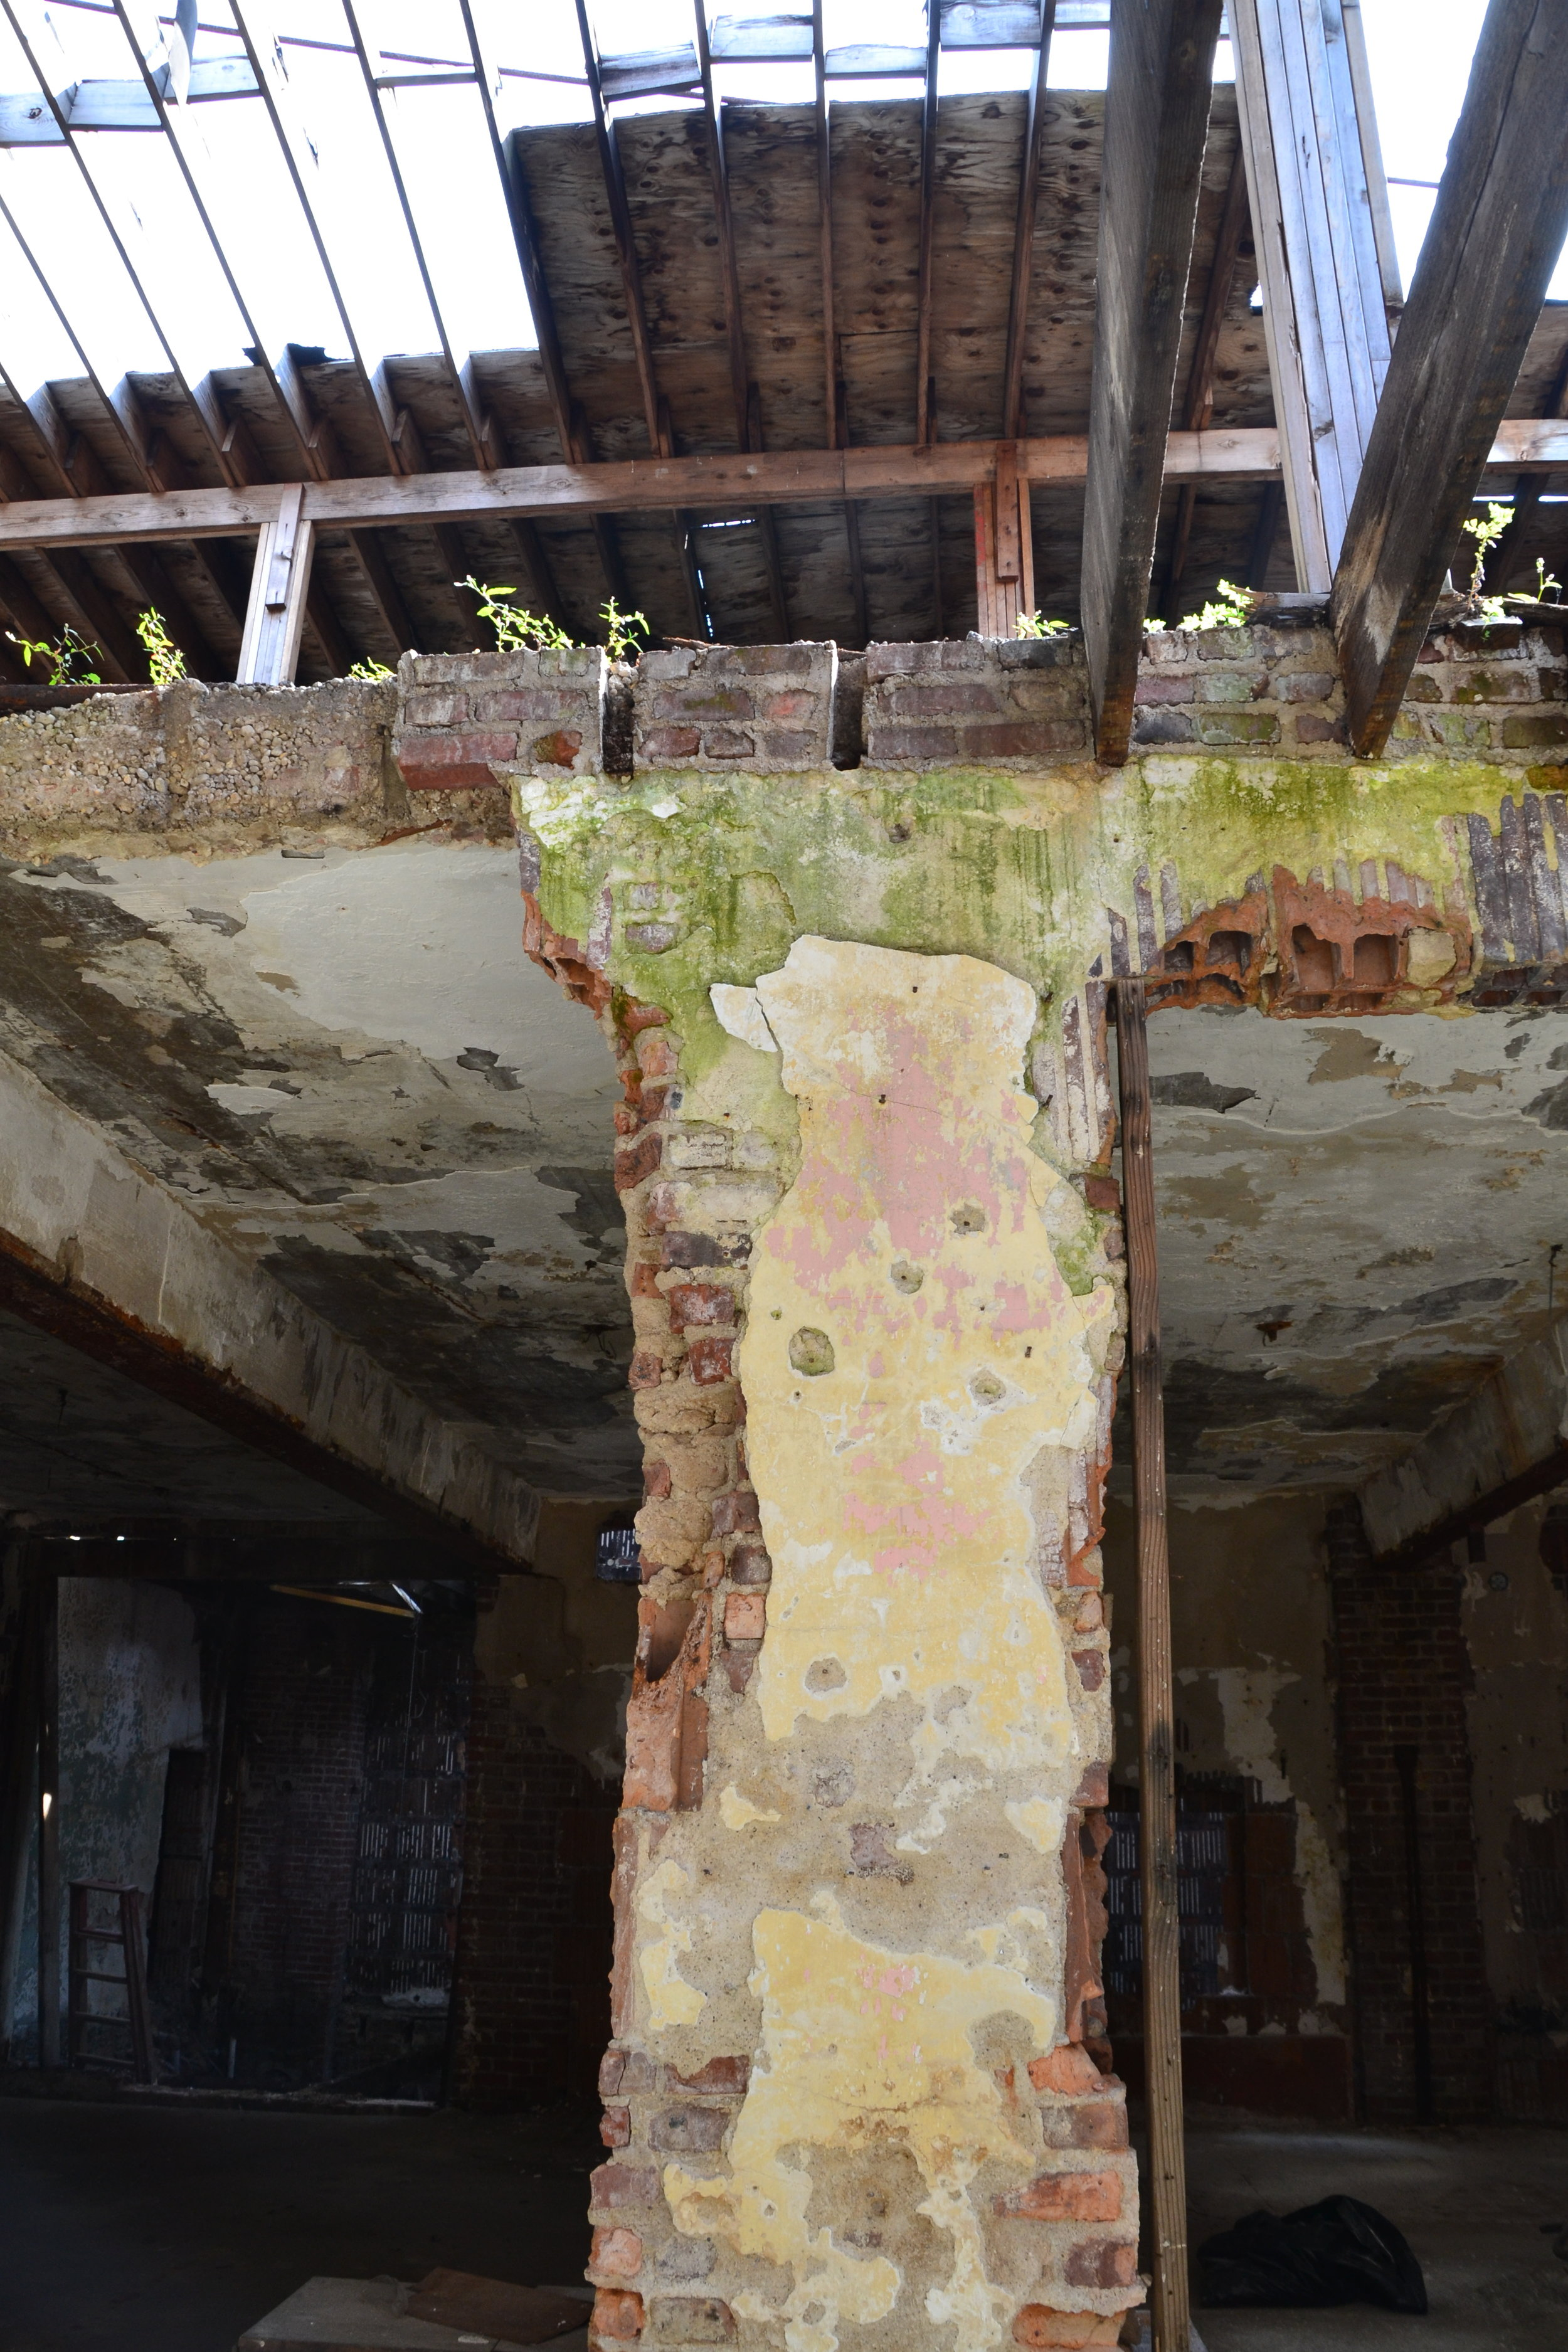 Layers of plaster evoke the Stadium's multiple entertainment uses over the decades.